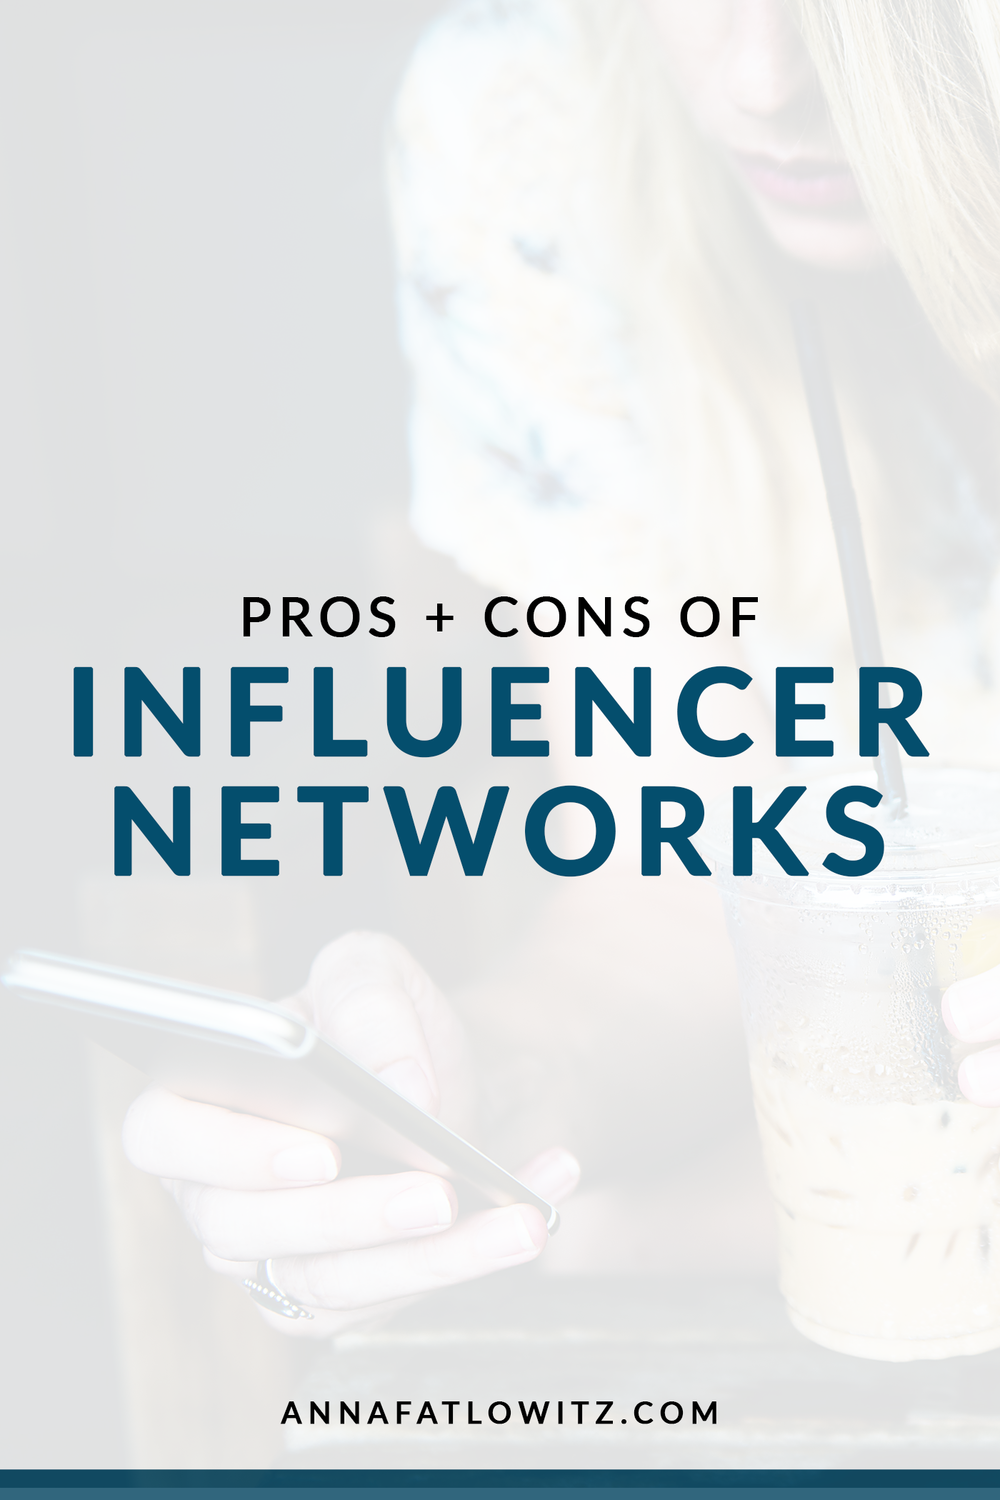 Thinking about using an influencer network to work with brands? Here are some pros and cons from a brand's perspective.